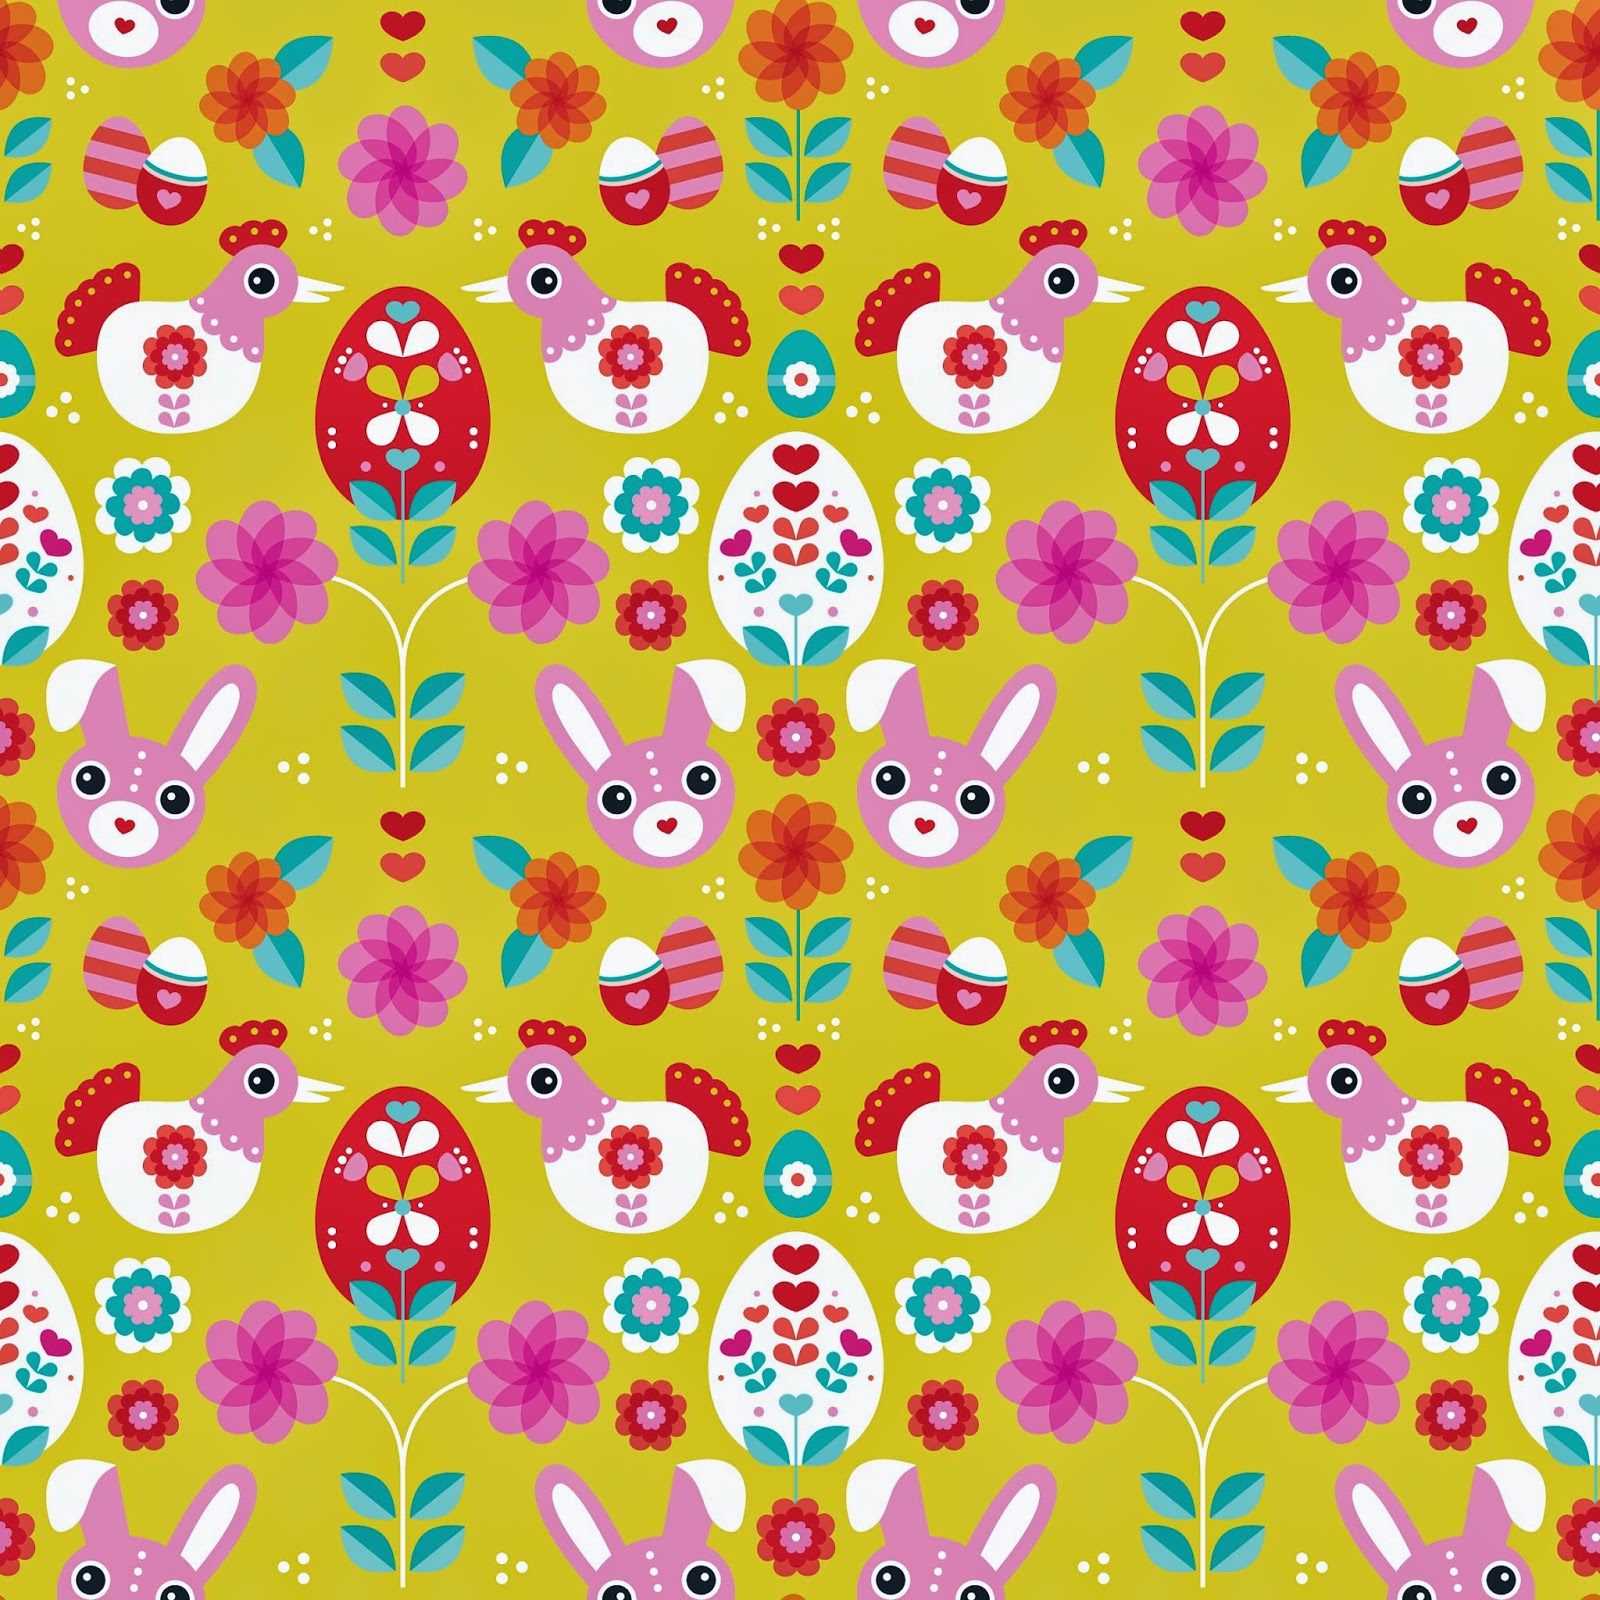 Free Printable Easter Paper – Hd Easter Images - Free Printable Easter Wrapping Paper